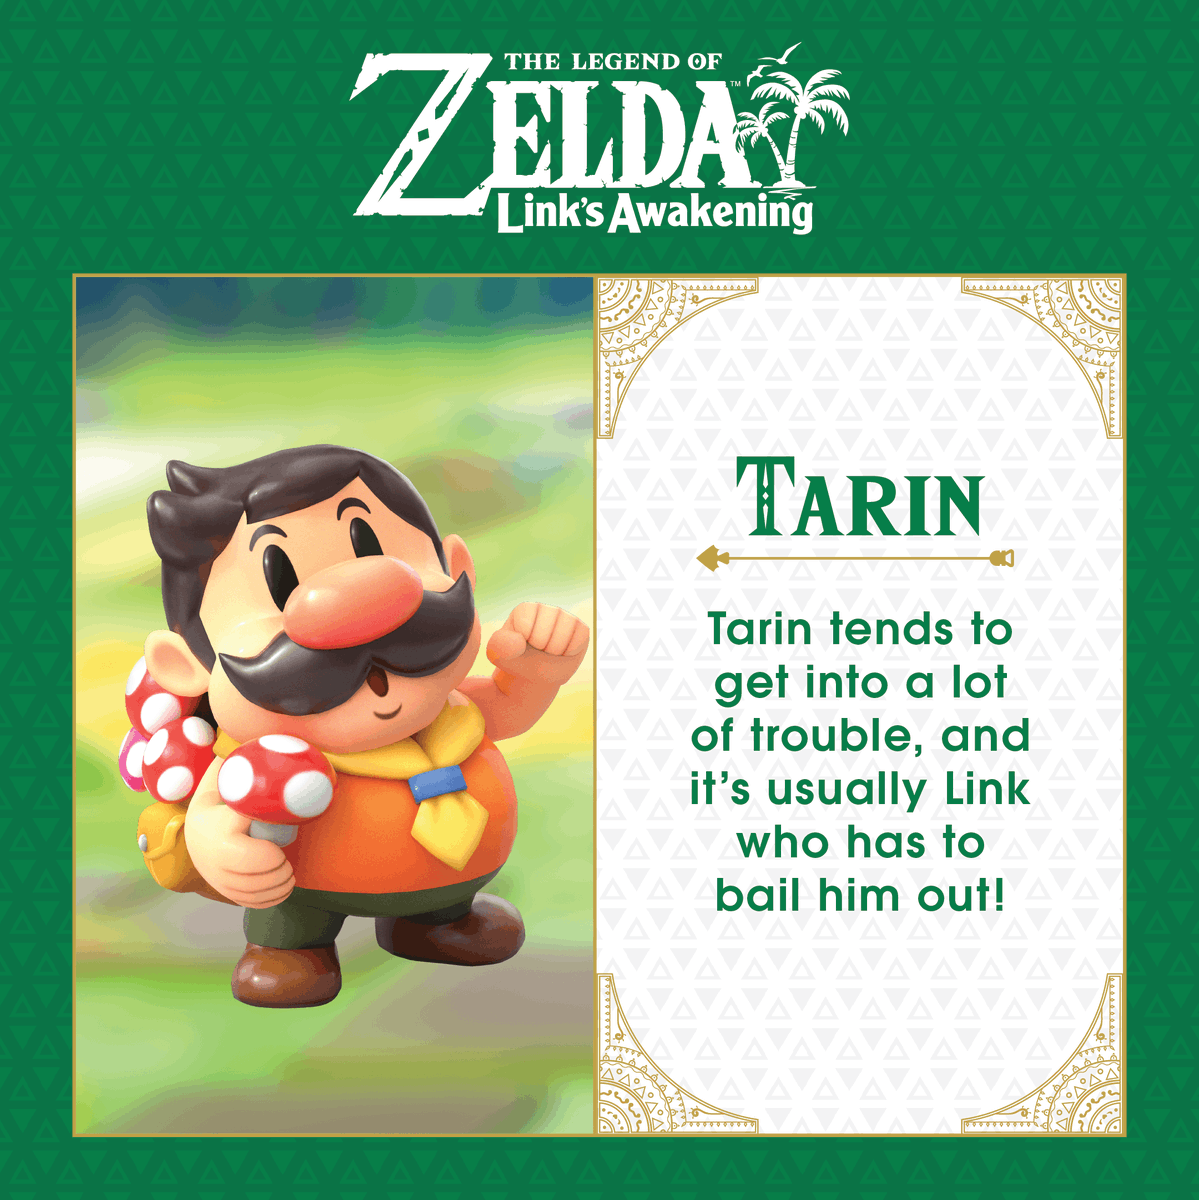 Tarin is a good guy, he just happens to have a knack for getting into sticky situations in The Legend of #Zelda: Link's Awakening! Tag that one friend you always have to bail out of trouble in the comments!